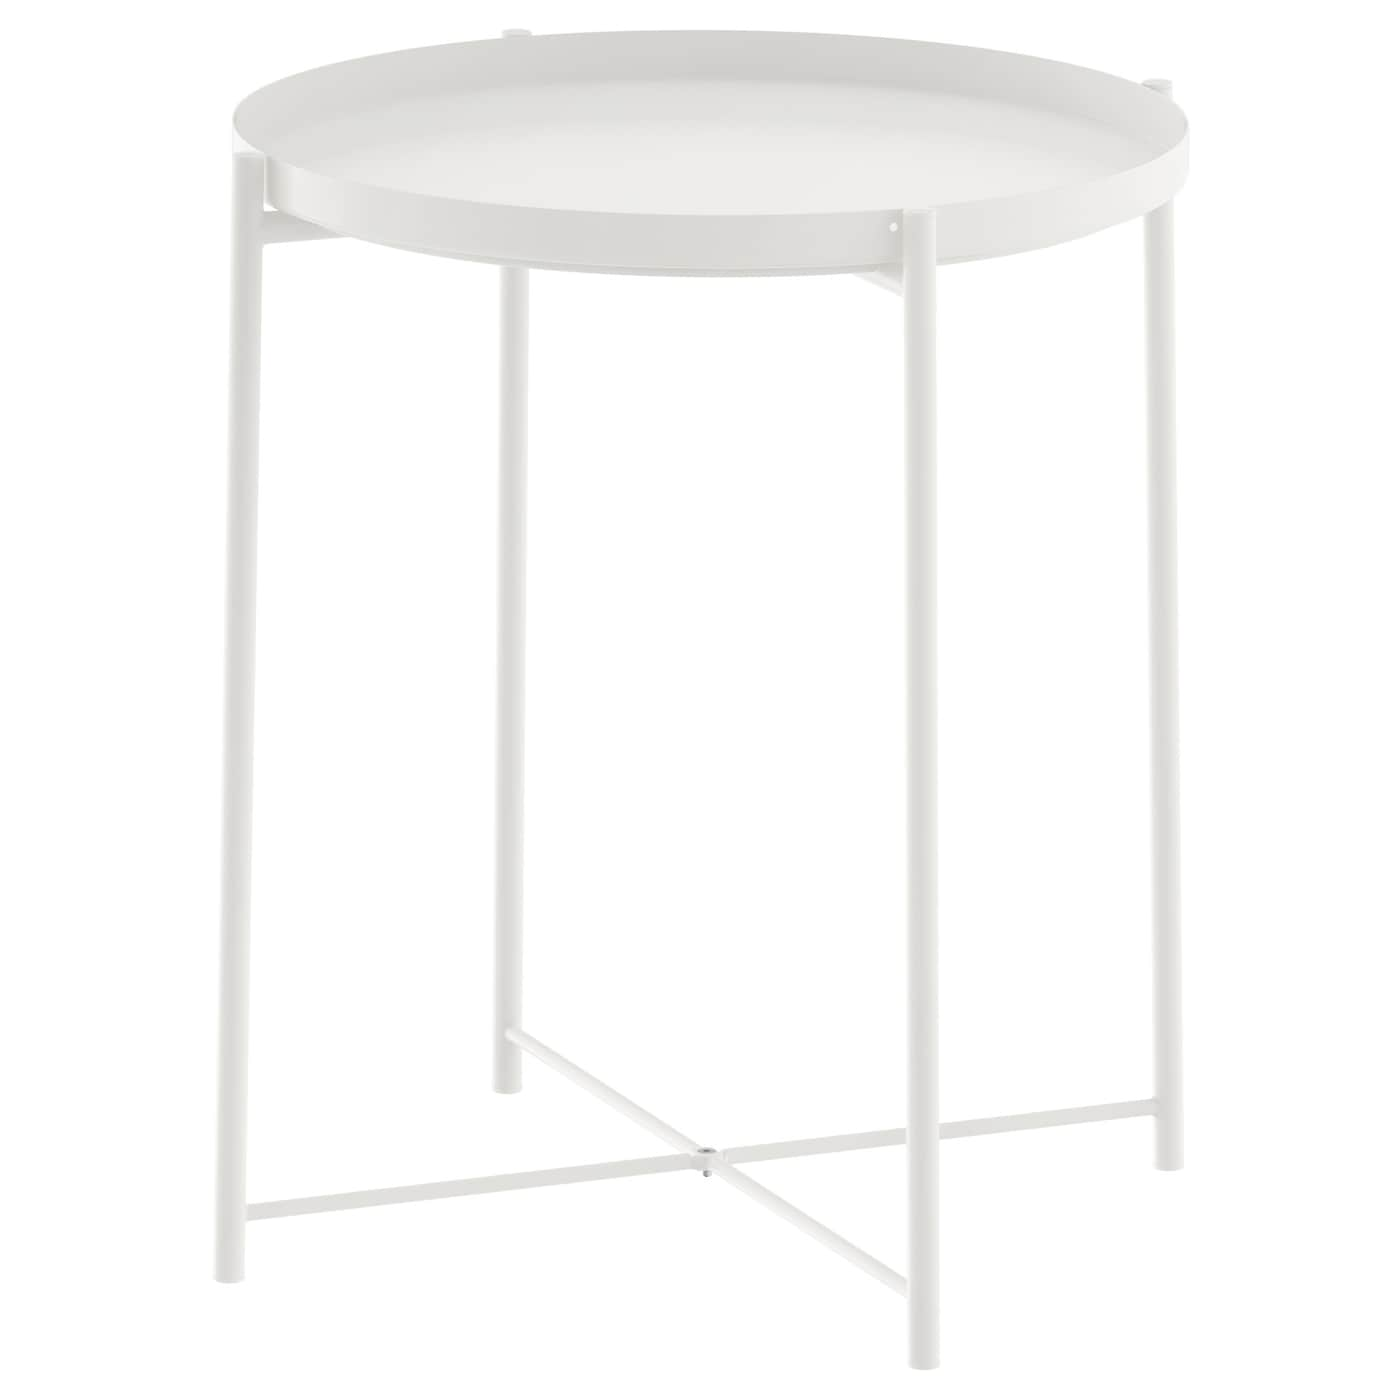 Gladom Tray table, White